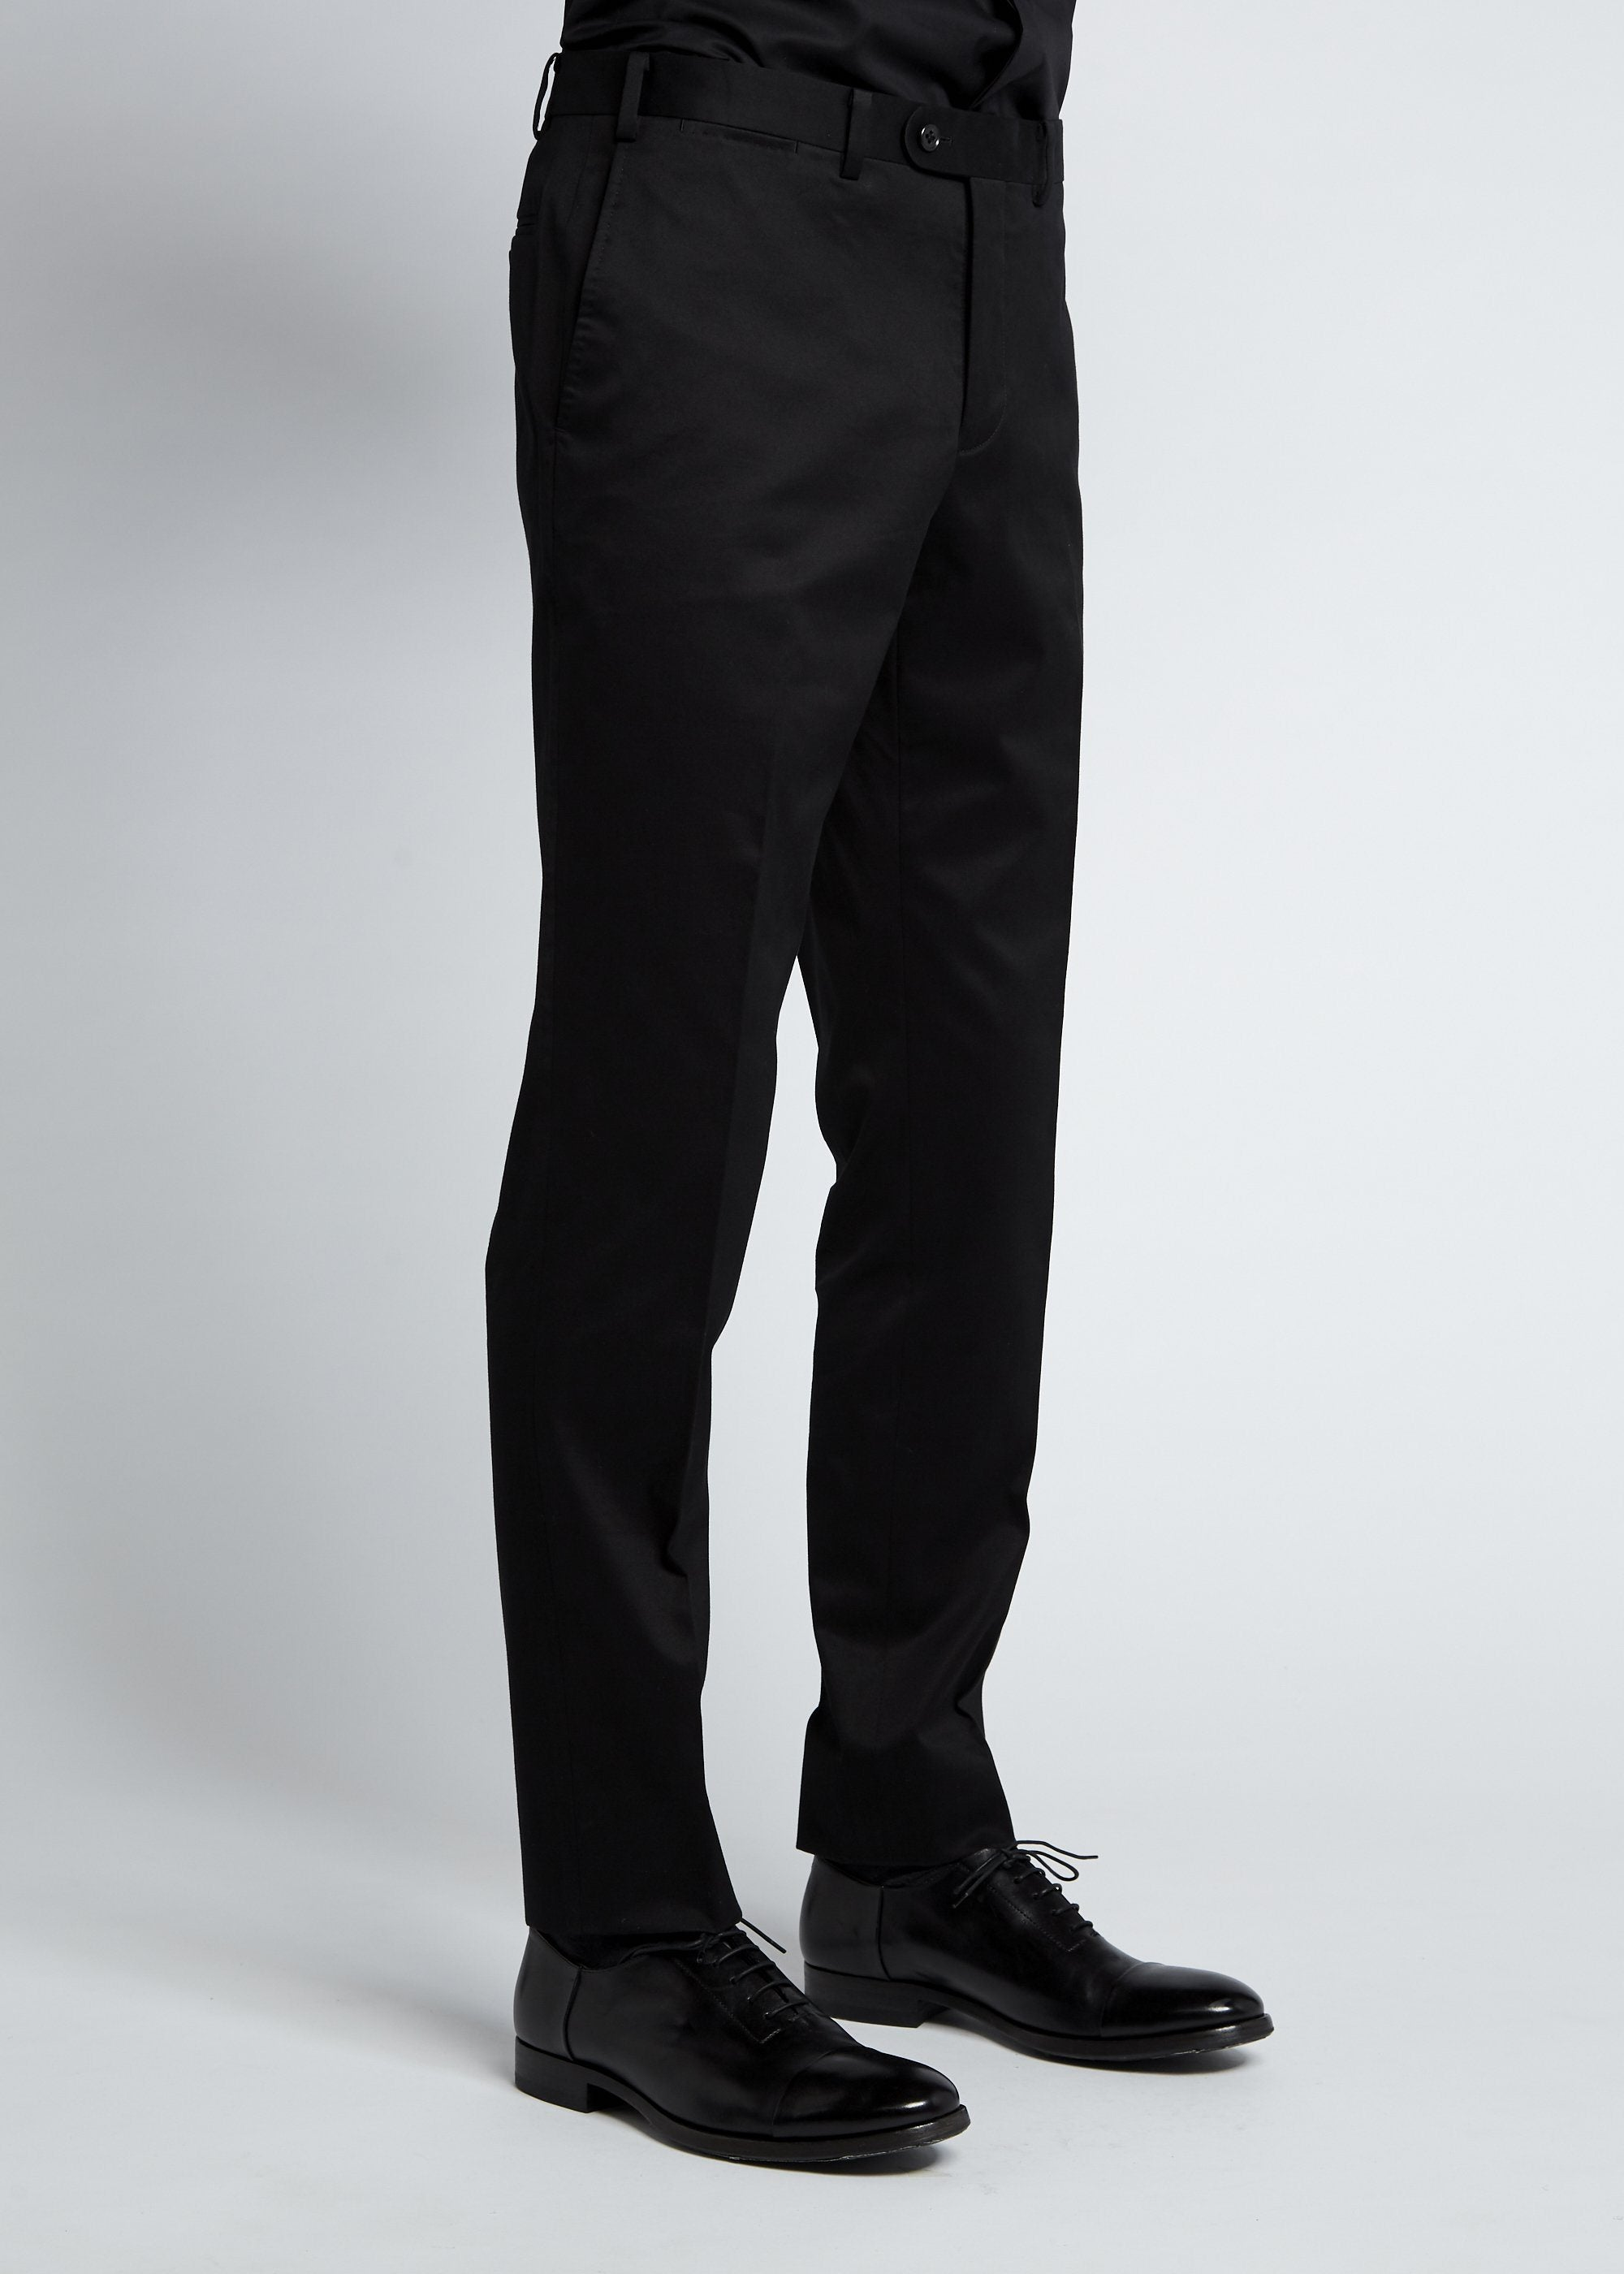 Xander Trouser - Black